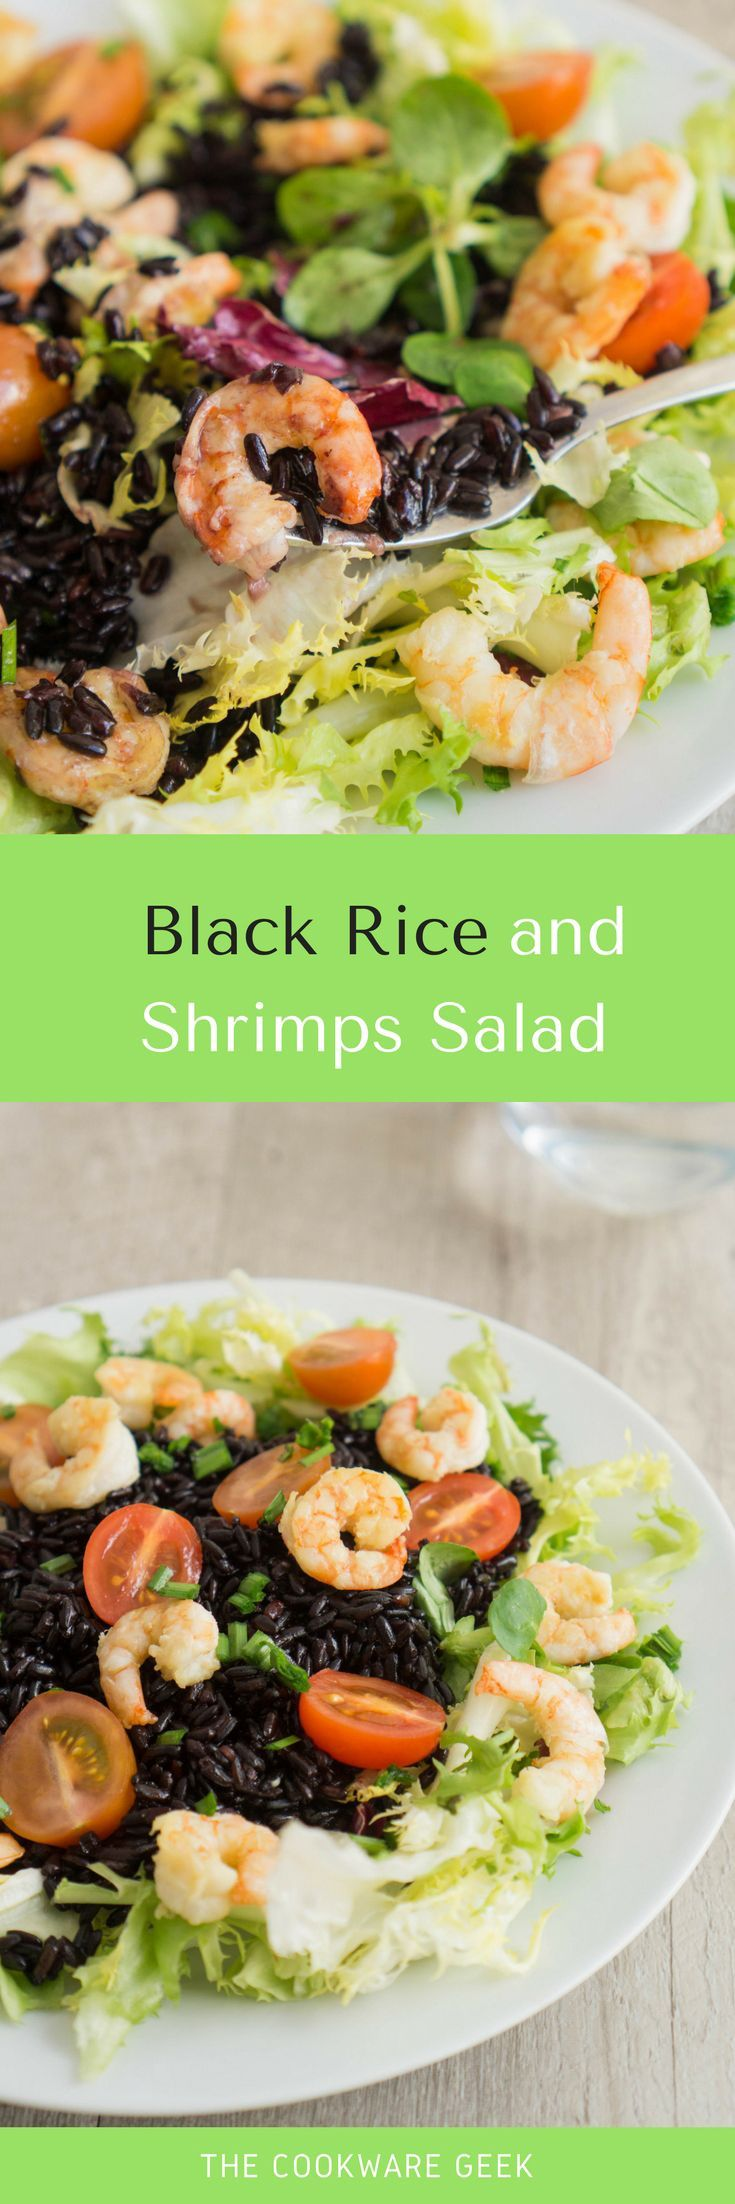 A healthy sour and sweet black rice and shrimps salad. An exotic twist to the regular shrimp salad. Easy and good for your body!